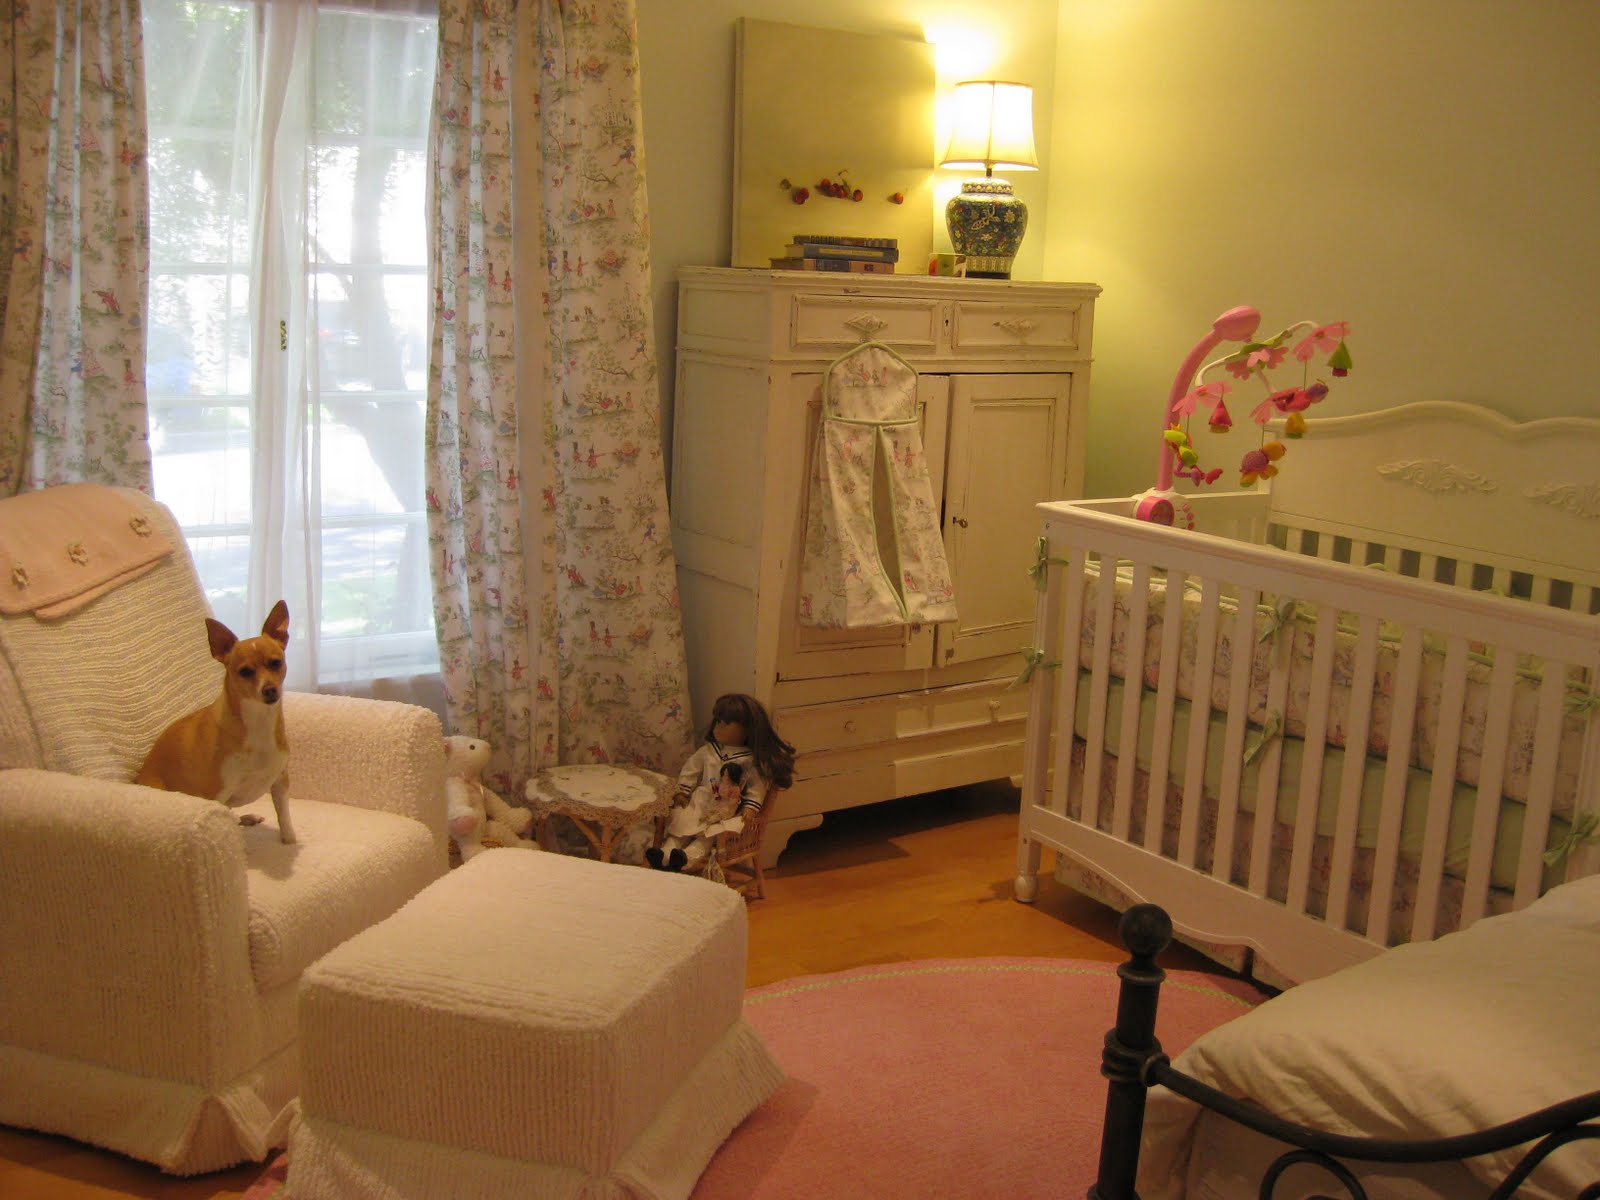 And Now I Want To Share With You Pictures Of The Baby Nursery Nearly Complete